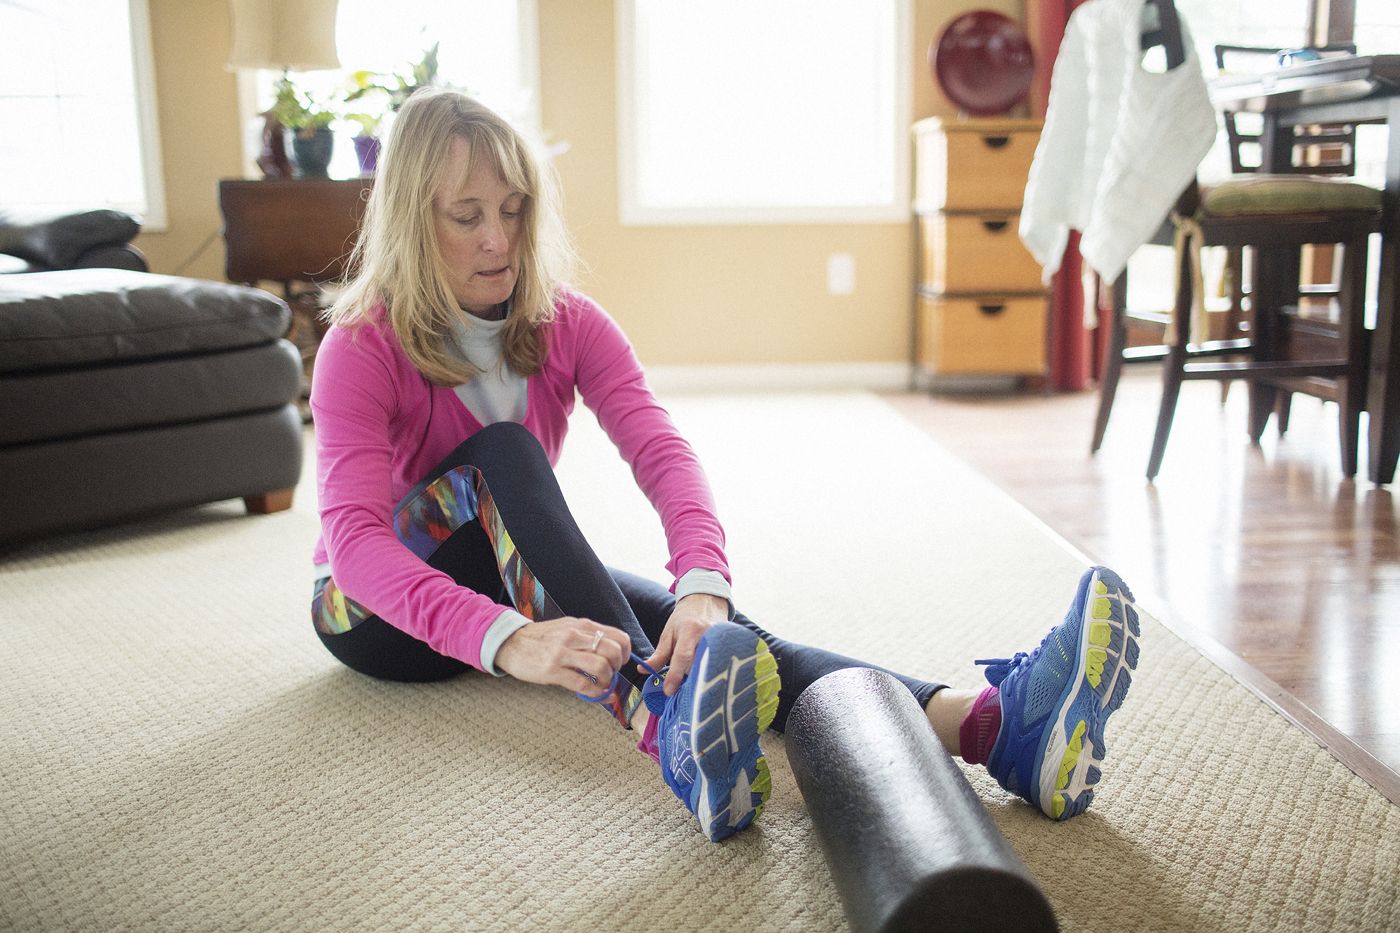 Faith ties the laces on her running shoes.